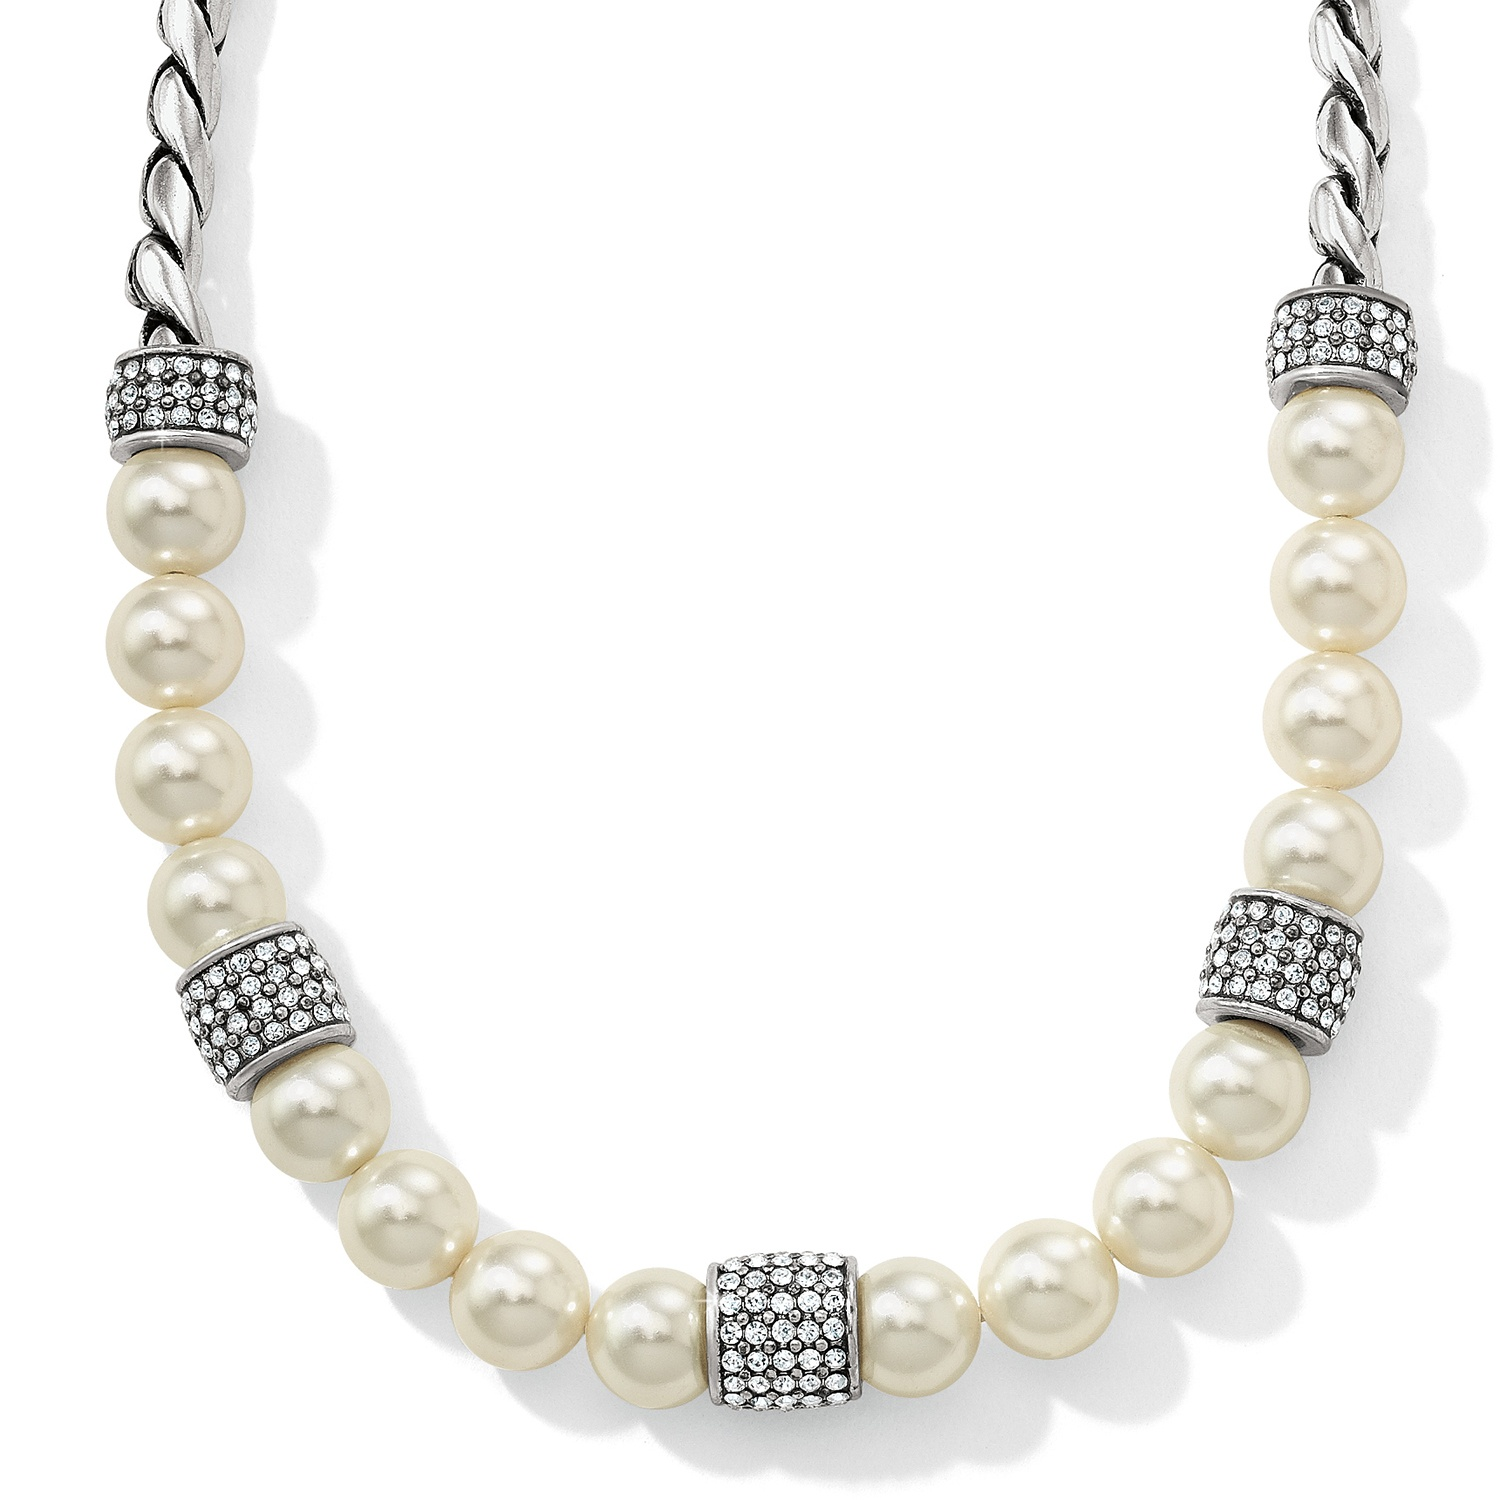 pearl pearls harriet and chains whinney jewellery cultured maryberrrycovershot